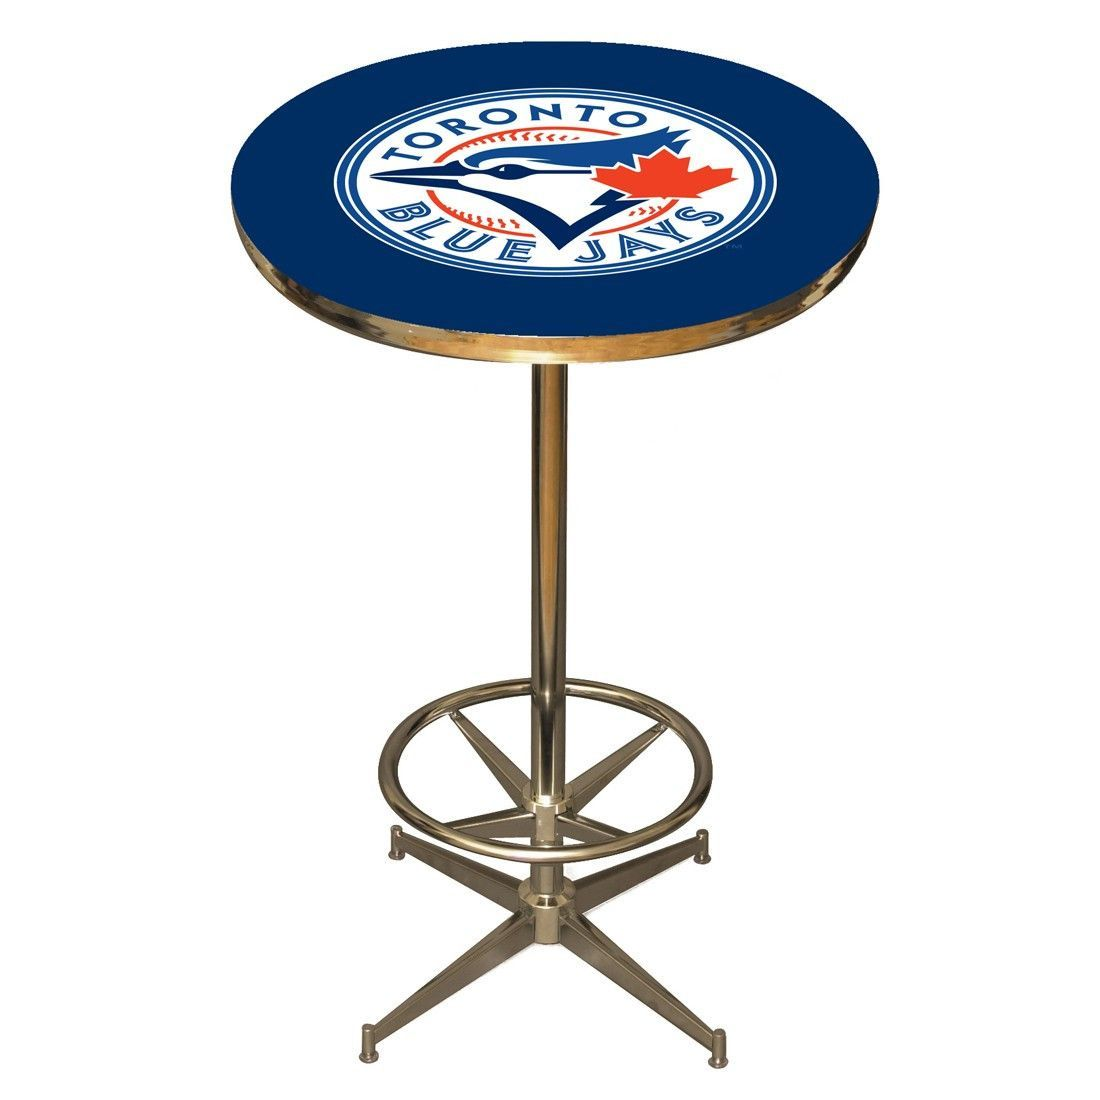 The Toronto Blue Jays Man Cave Pub Table By Imperial USA